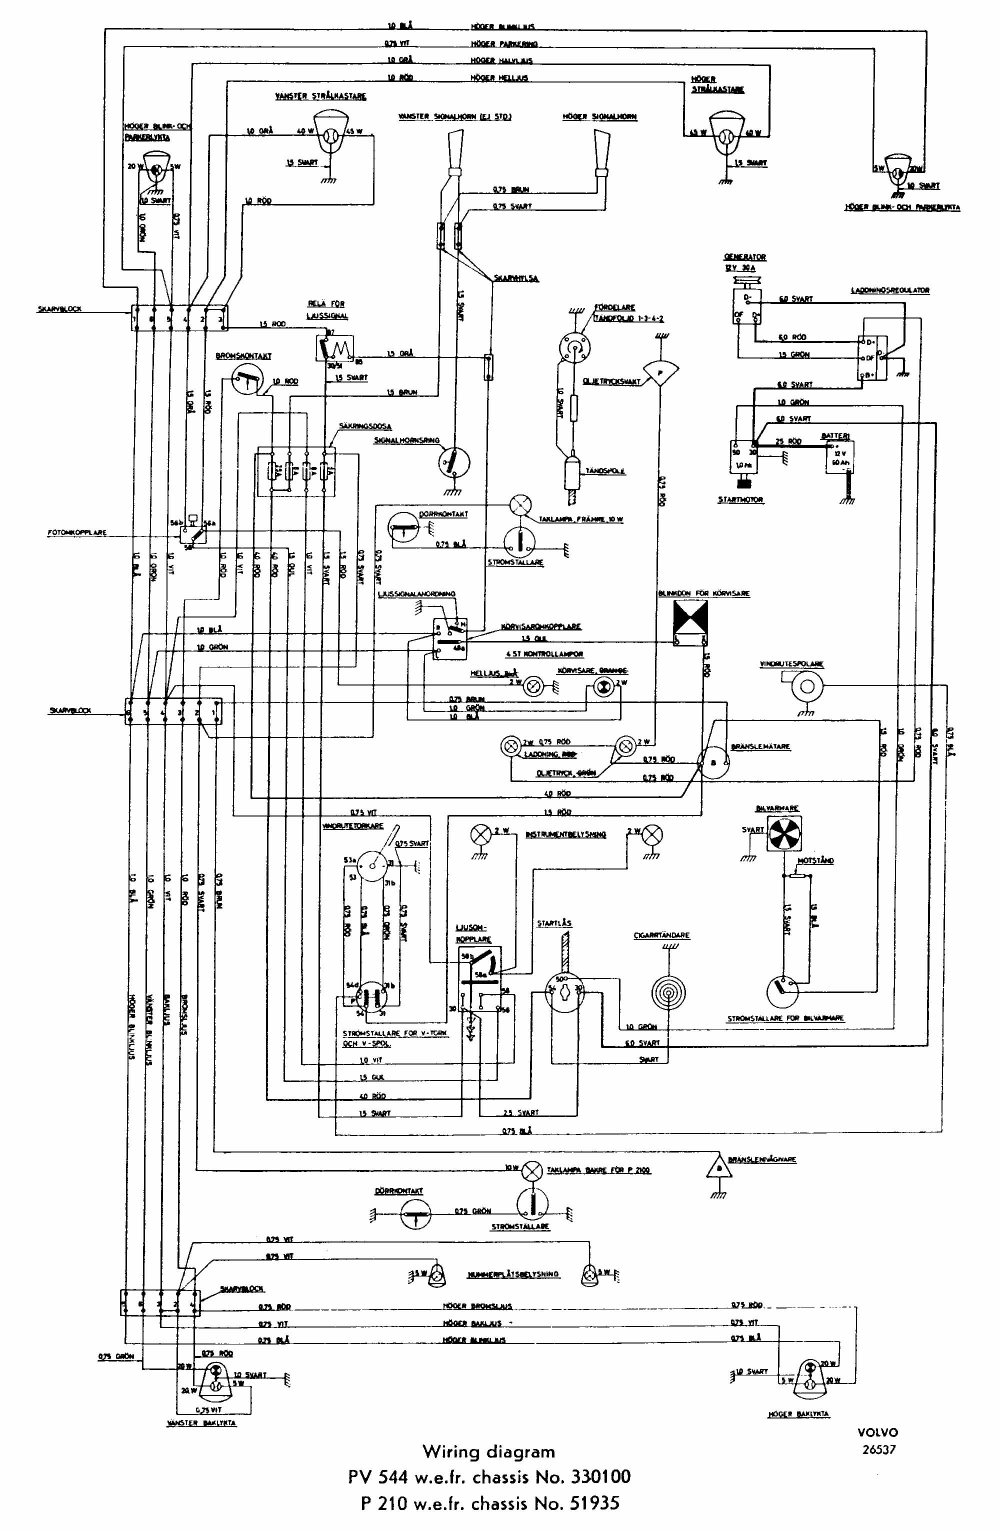 medium resolution of ez go wiring diagram 79 wiring library rh 52 evitta de em 235 wiring diagram em 104 wiring diagram